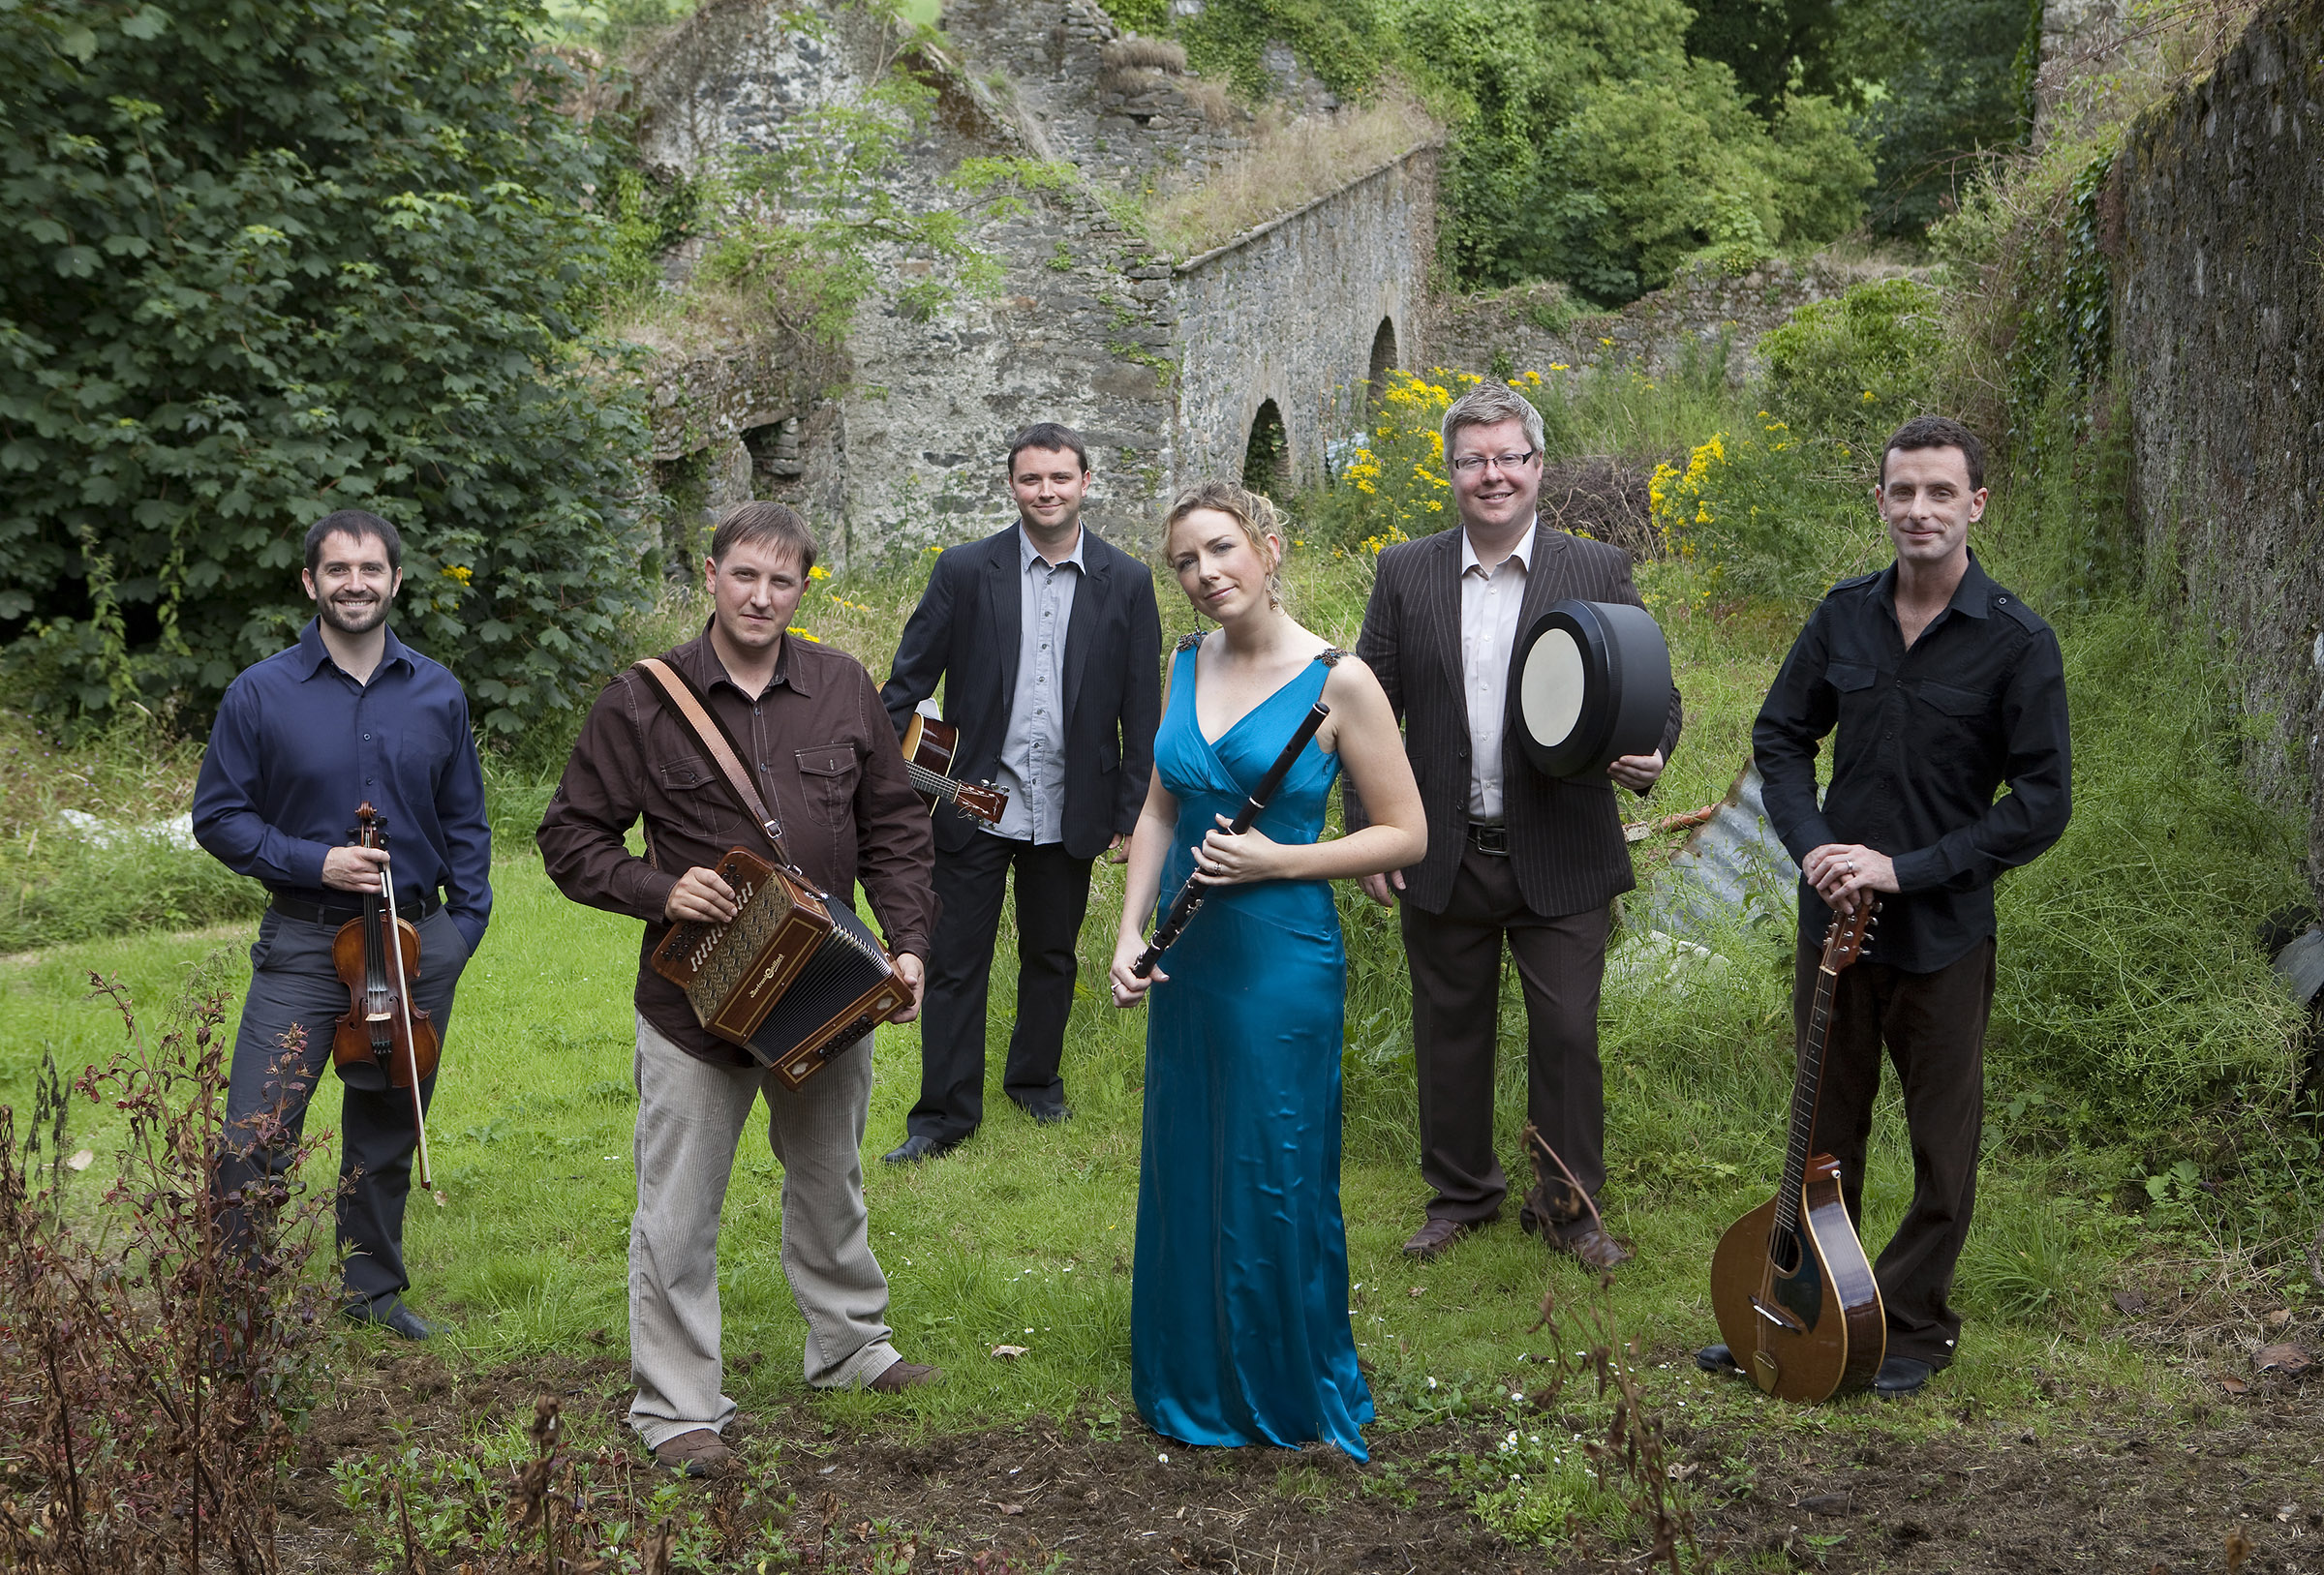 """Danu, a high-spirited Celtic group from Ireland, will perform """"A Christmas Gathering"""" on December 11."""